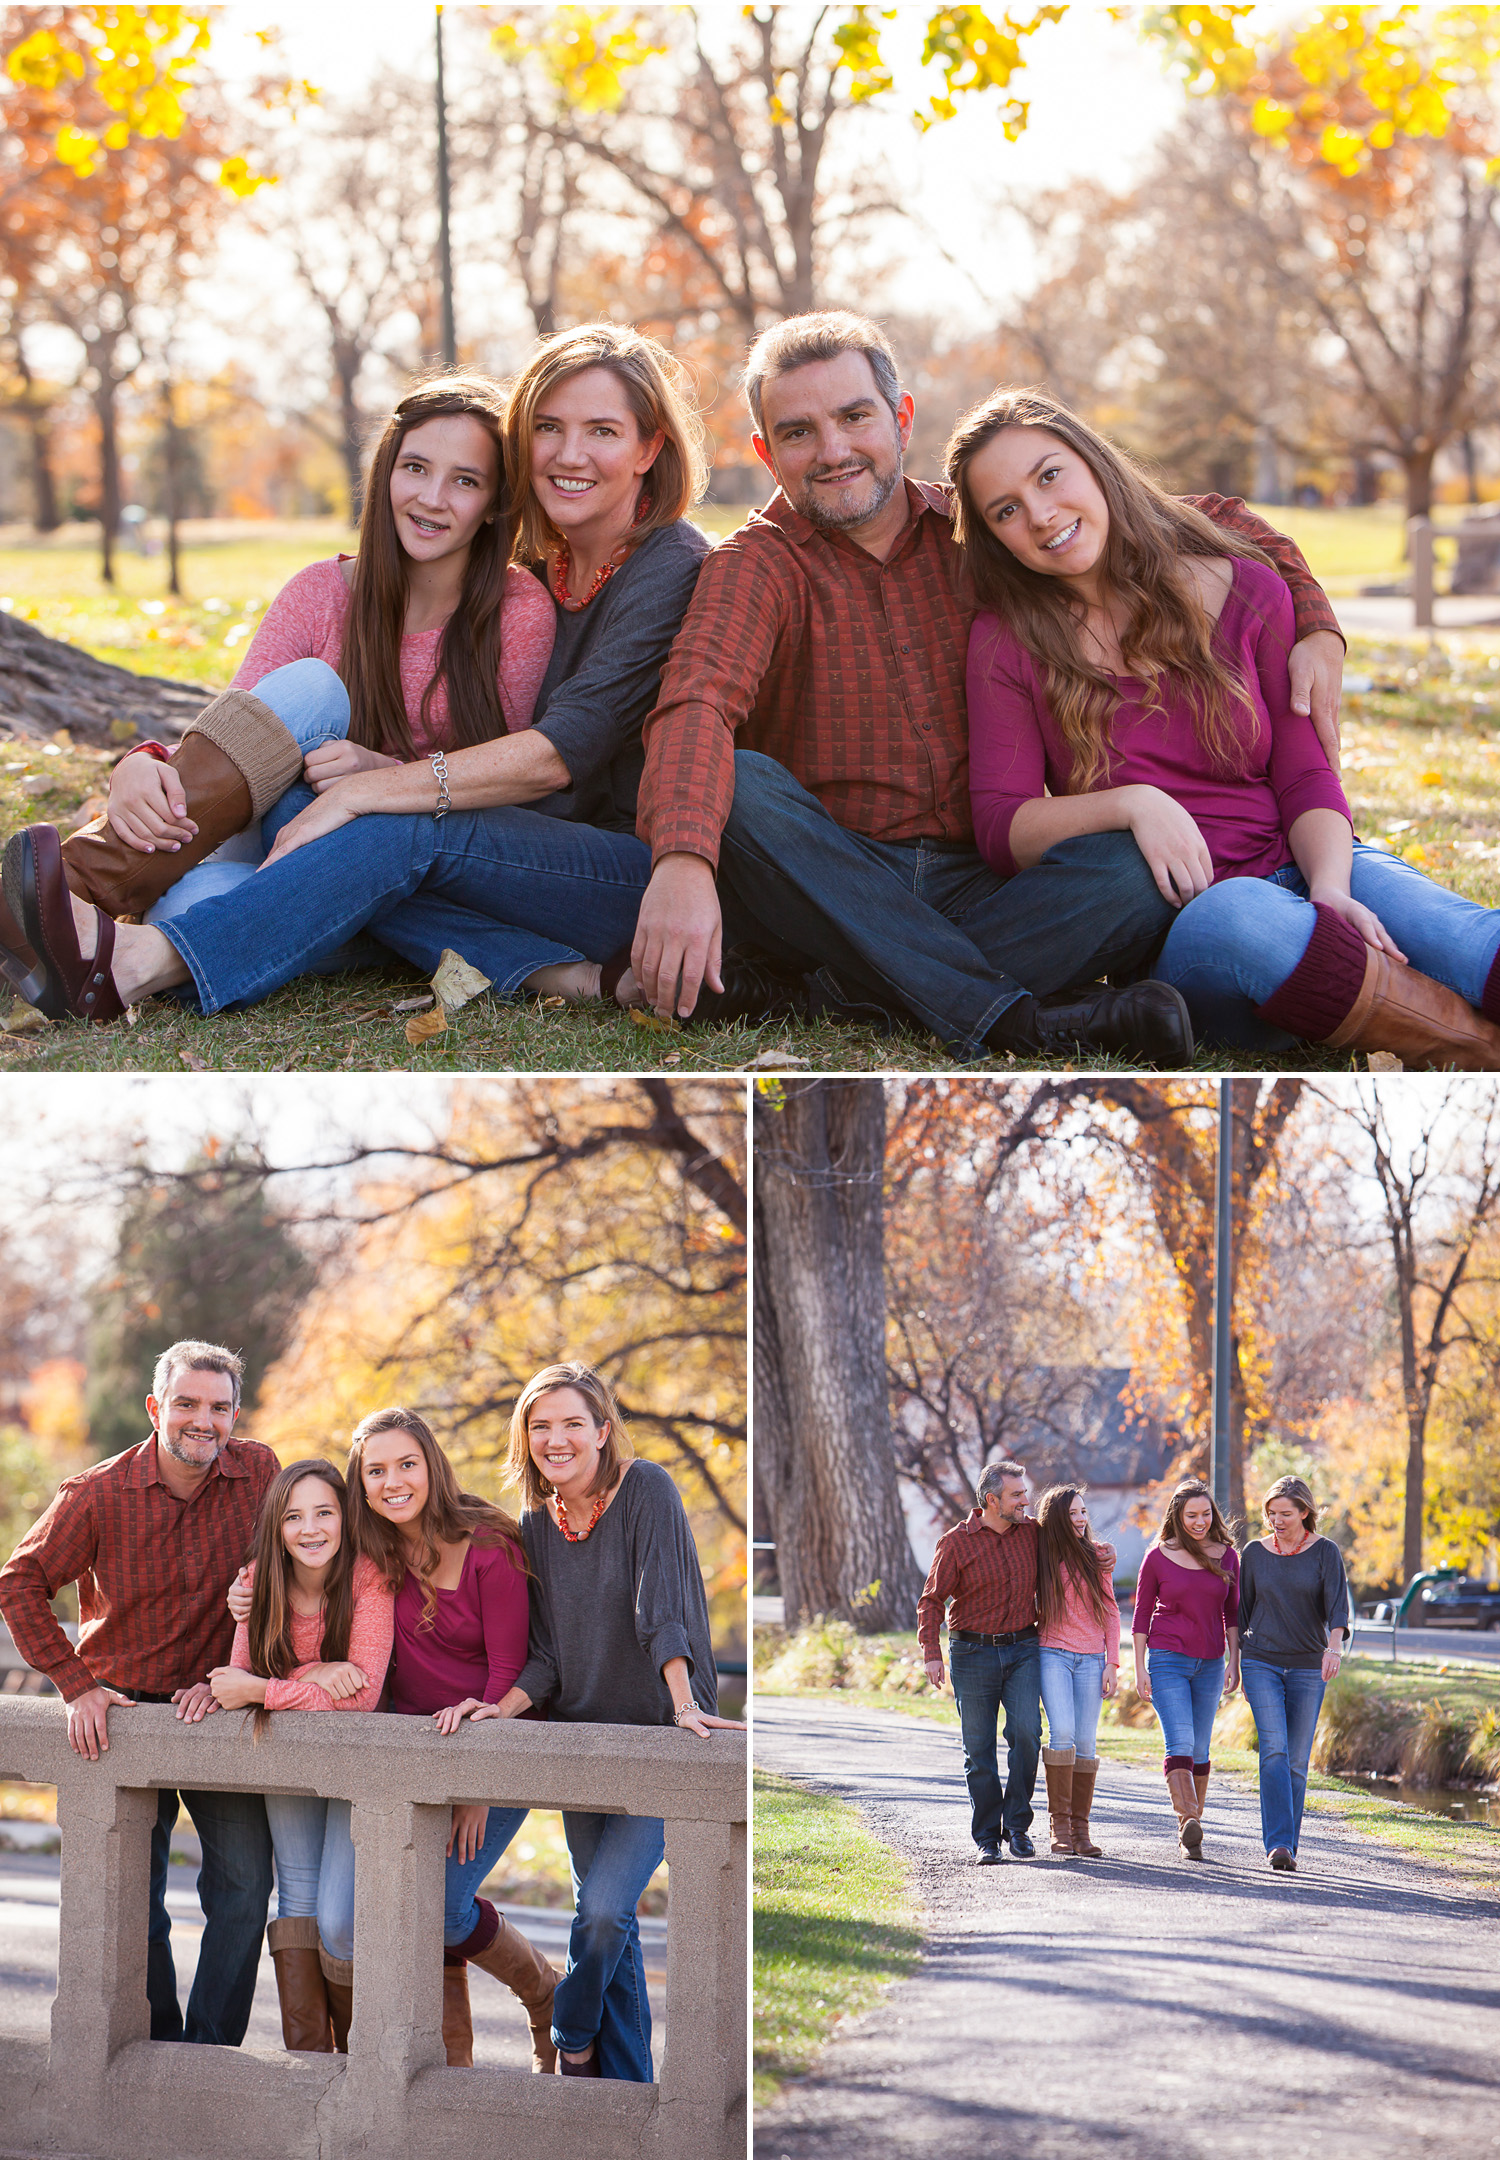 Autumn Family Portraits, outside at Wash Park in Denver with photographer Jennifer Koskinen | Merritt Portrait Studio